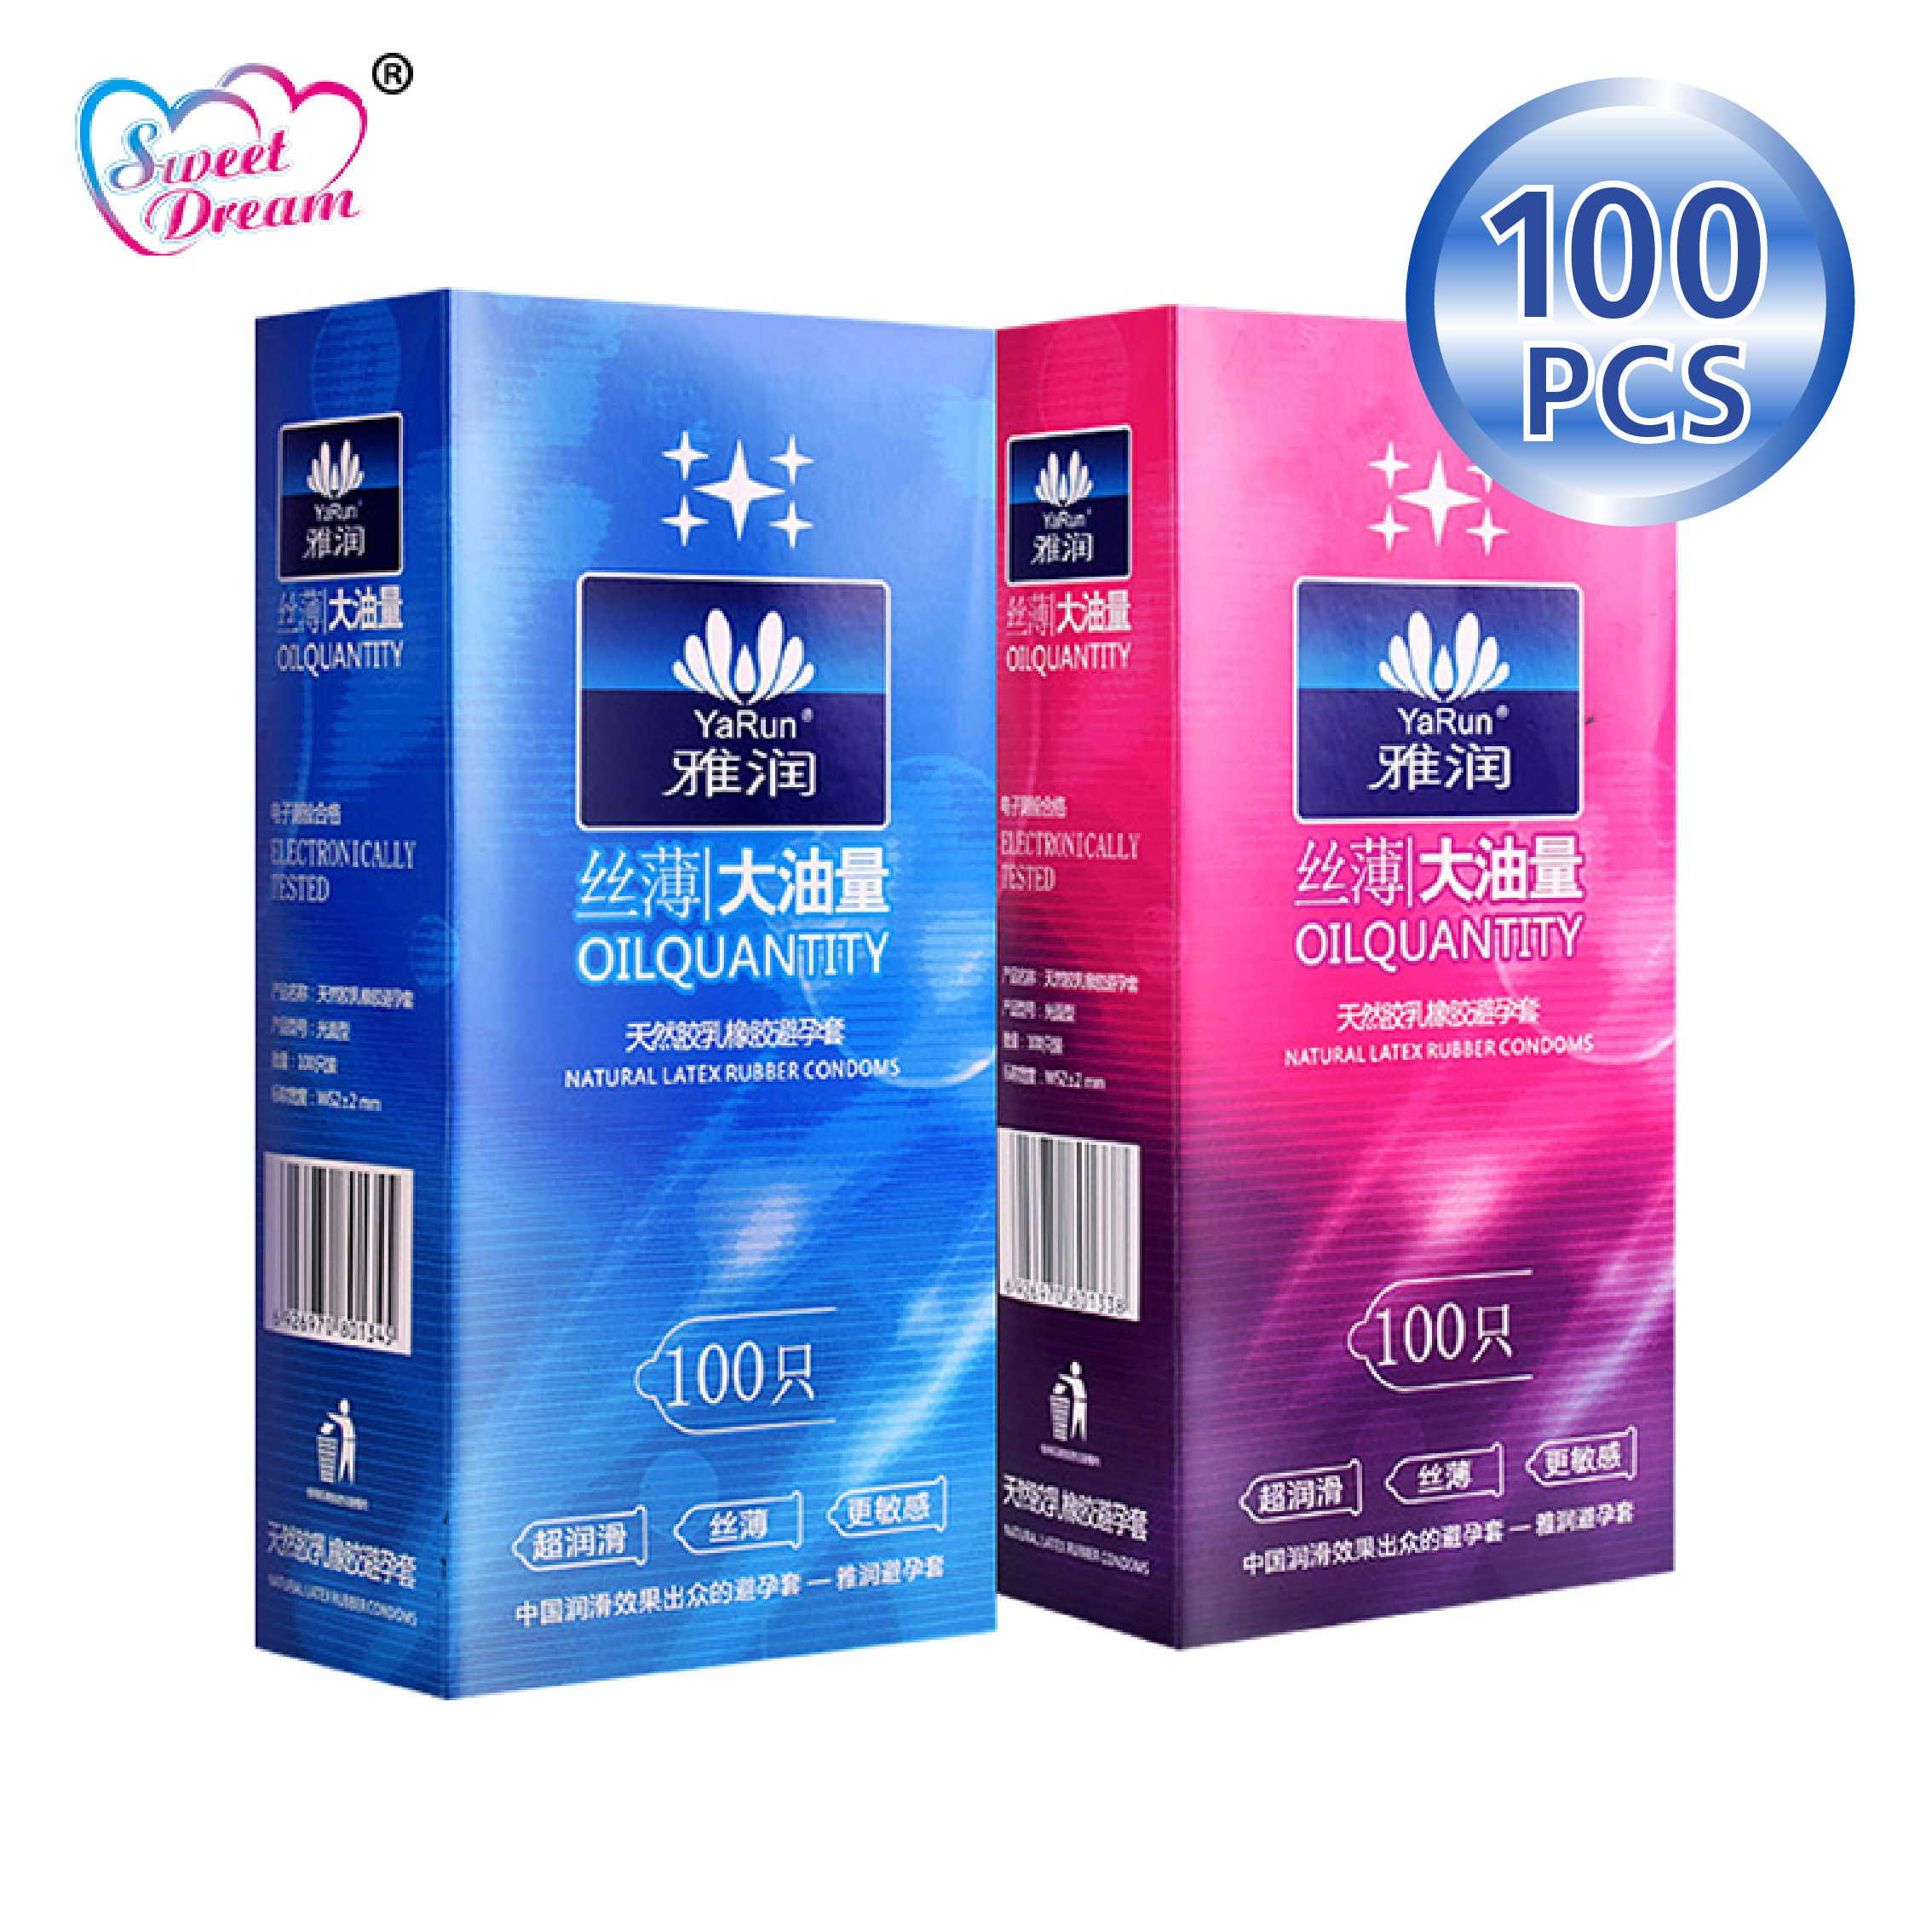 Sweet Dream Life Condoms 100 Pcs/Lot Natural Latex Smooth Lubricated Contraception Condoms For Men Sex Toys Sex Products LF-011